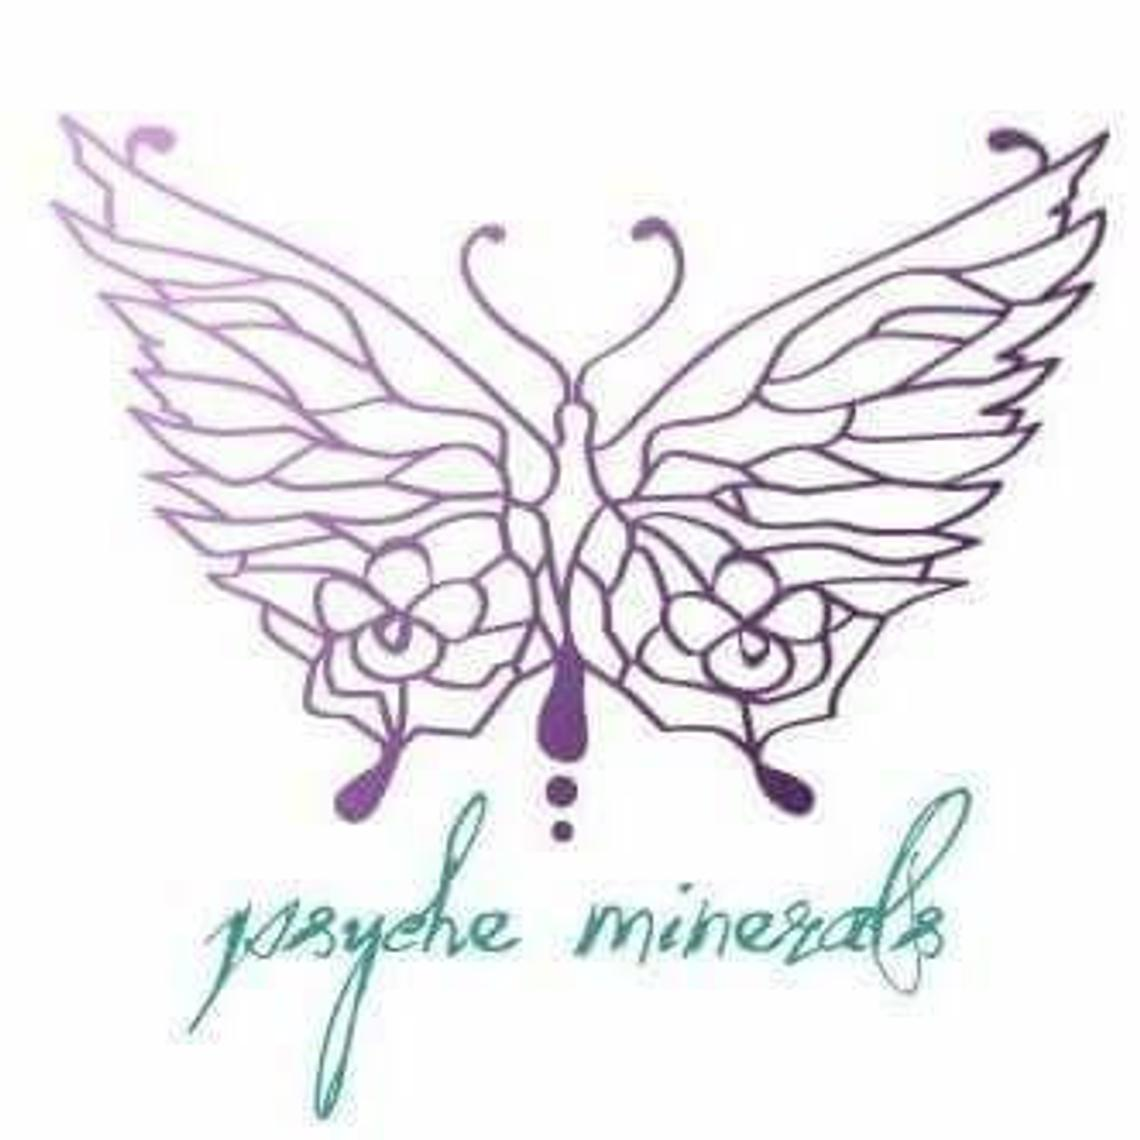 Psyche Minerals  offers Handmade, unique mineral eye shadows that you can't find on the mass market without all the additives, fillers, and preservatives .   USE CODE NIGHTSHADE15 to save 15%